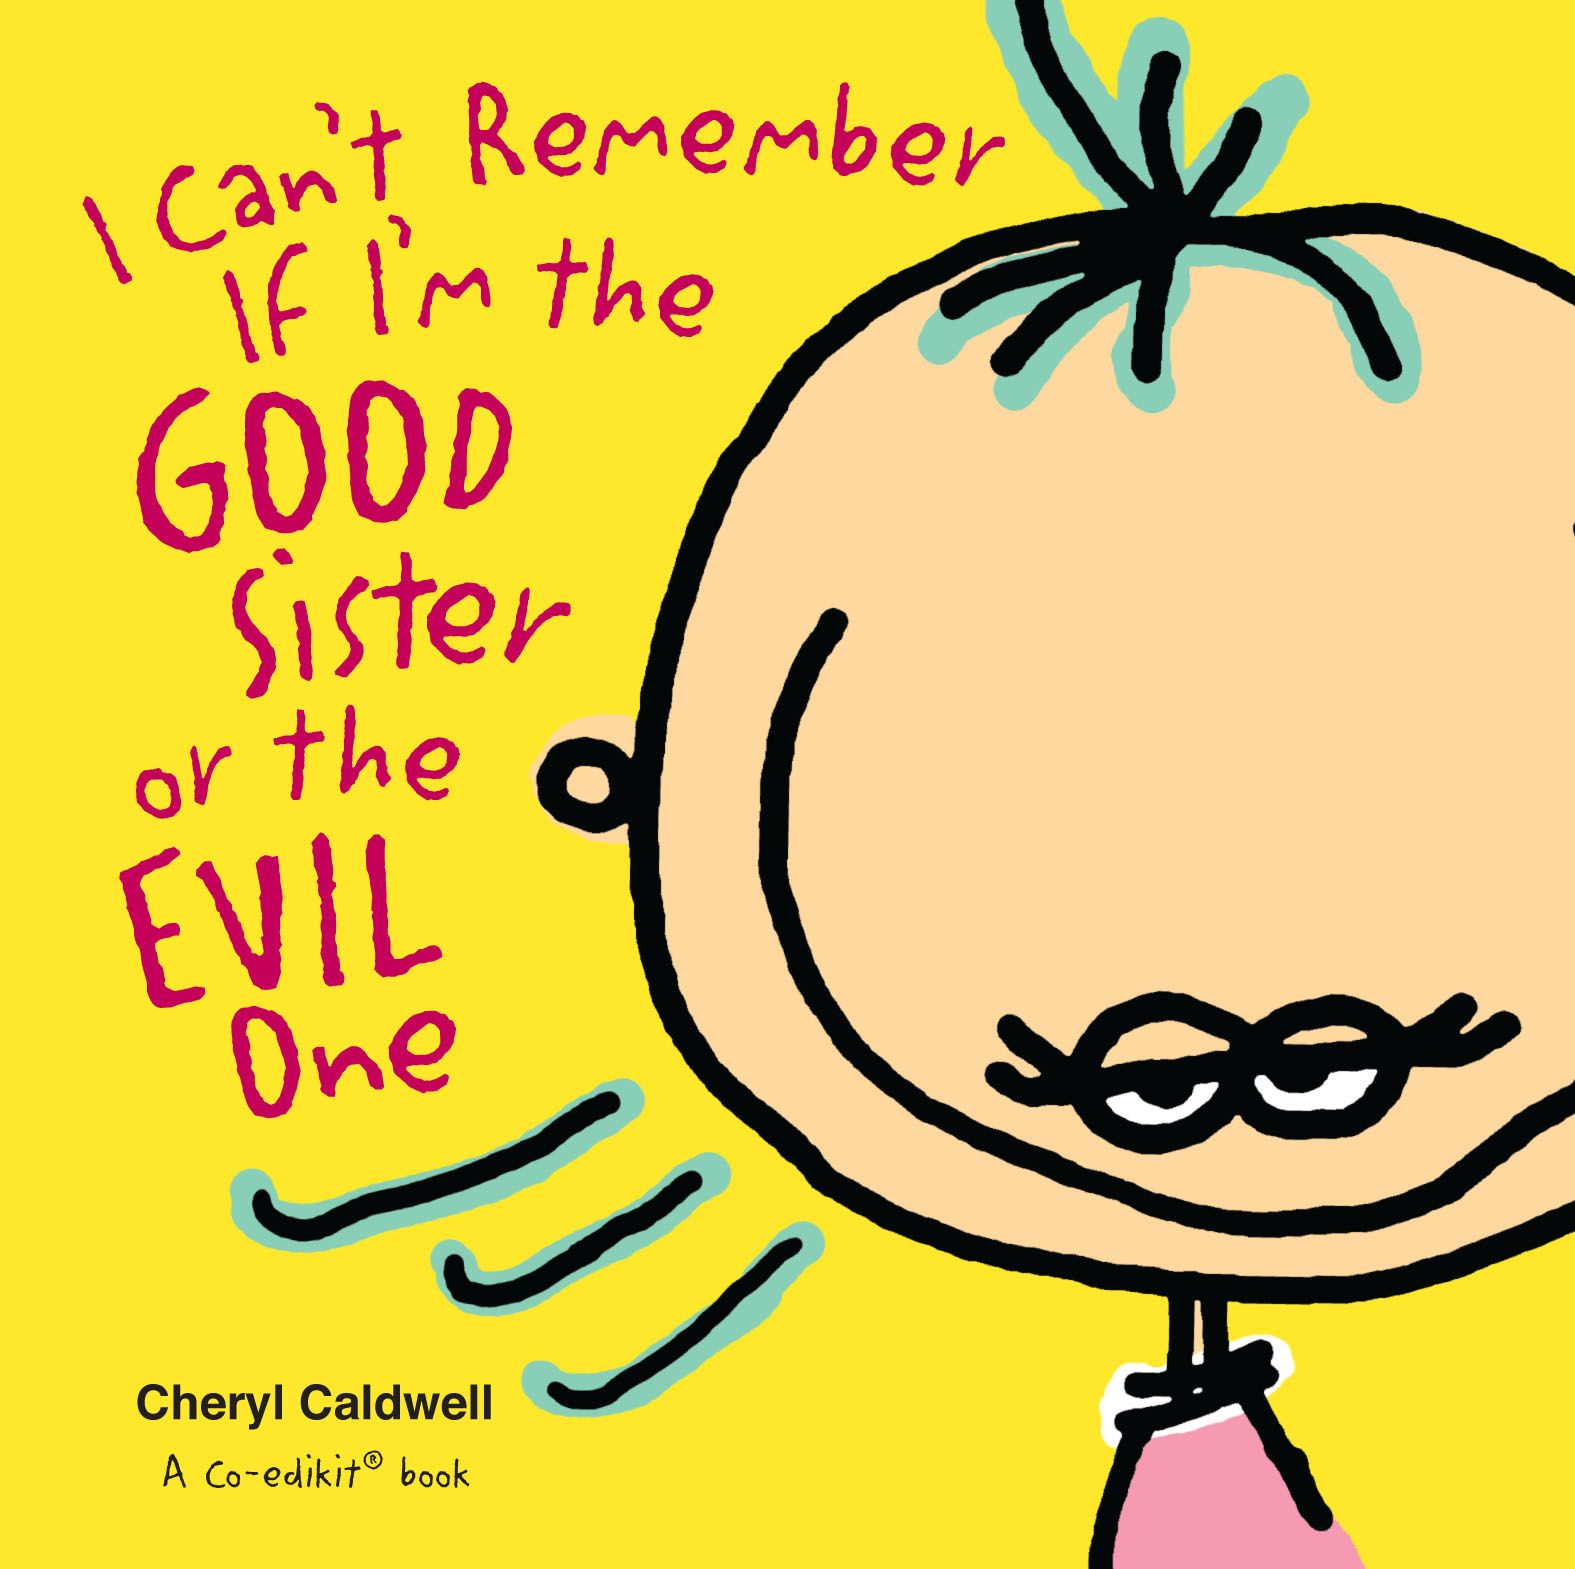 I Can't Remember If I'm the Good Sister or the Evil One By: Cheryl Caldwell,Co-edikit